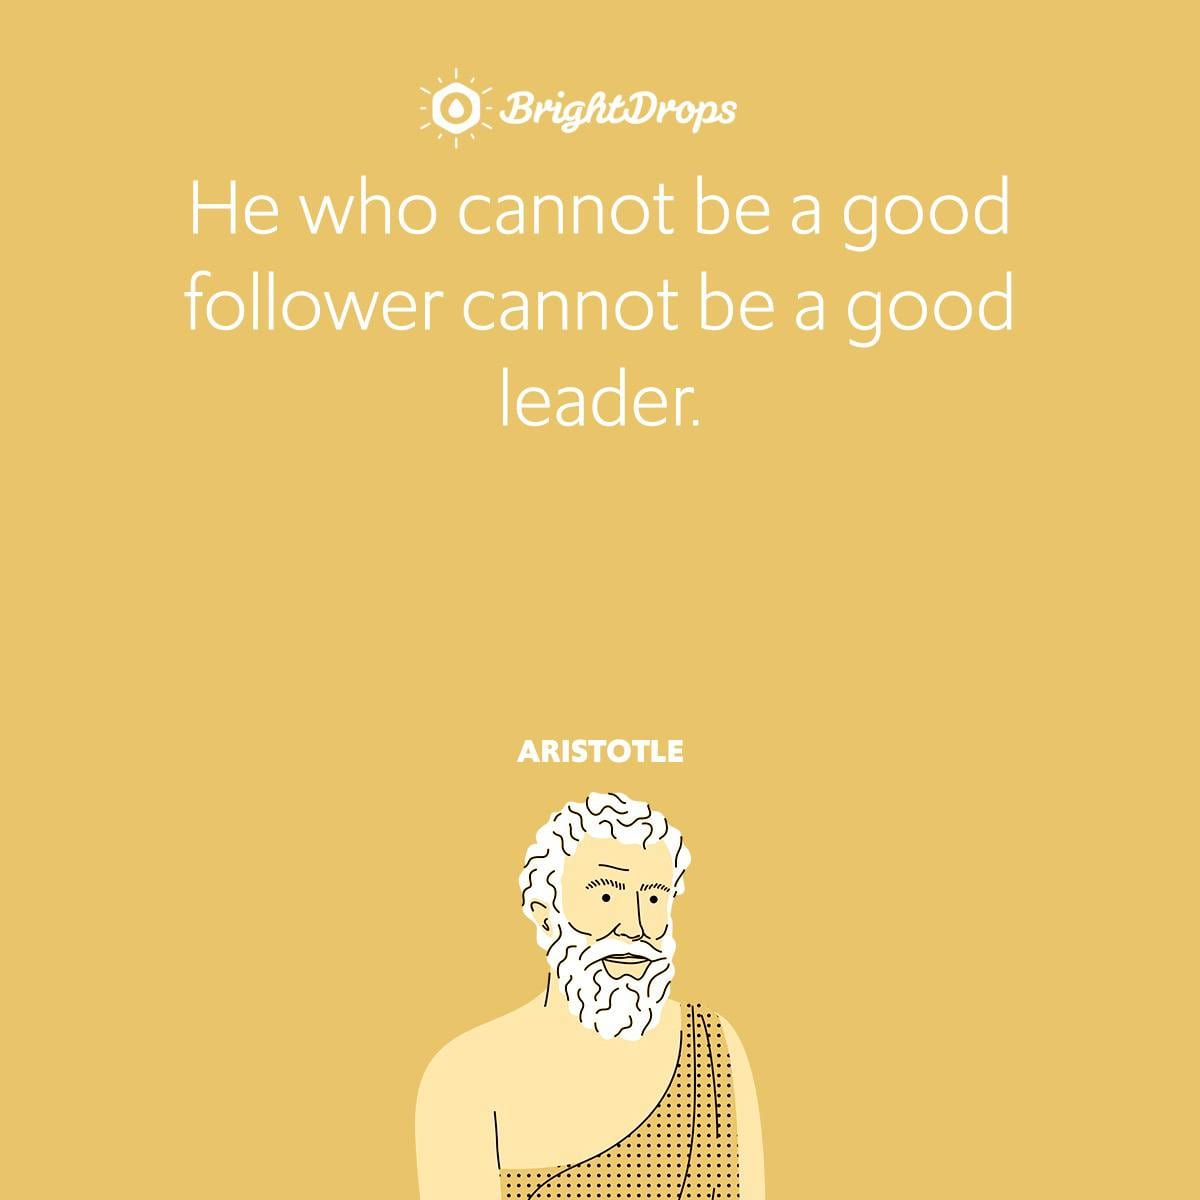 He who cannot be a good follower cannot be a good leader.